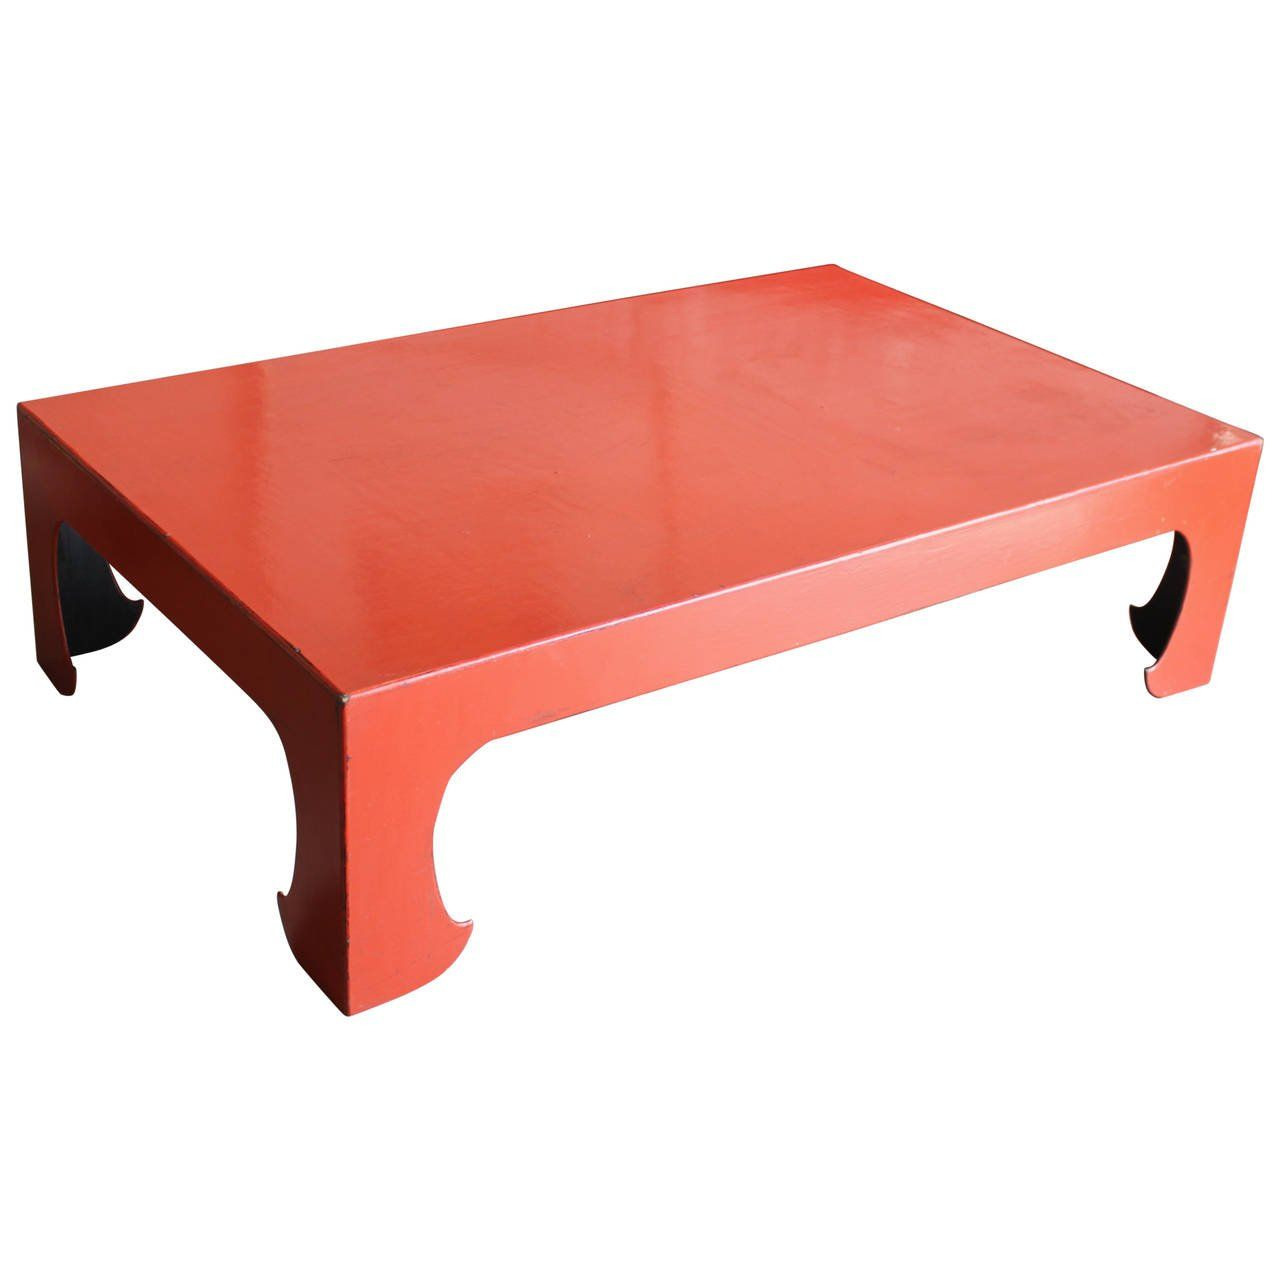 Superbe Vintage Red Coral Lacquered Chinese Coffee Table 1